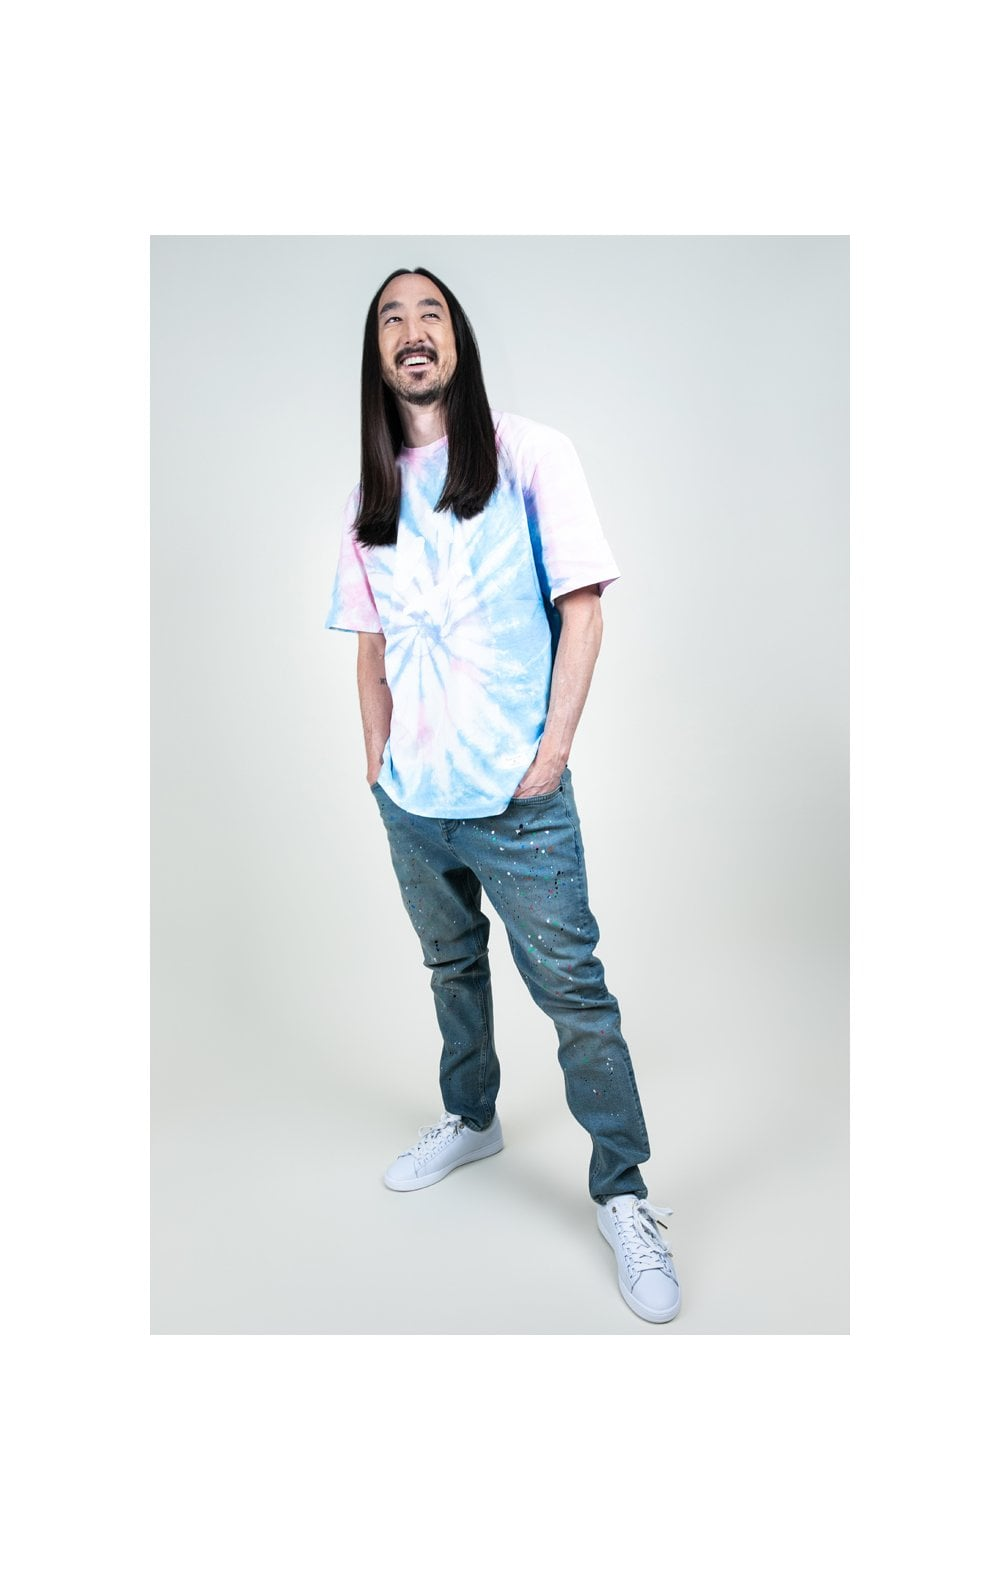 Load image into Gallery viewer, SikSilk X Steve Aoki Loose Fit Riot Denims - Light Wash (4)